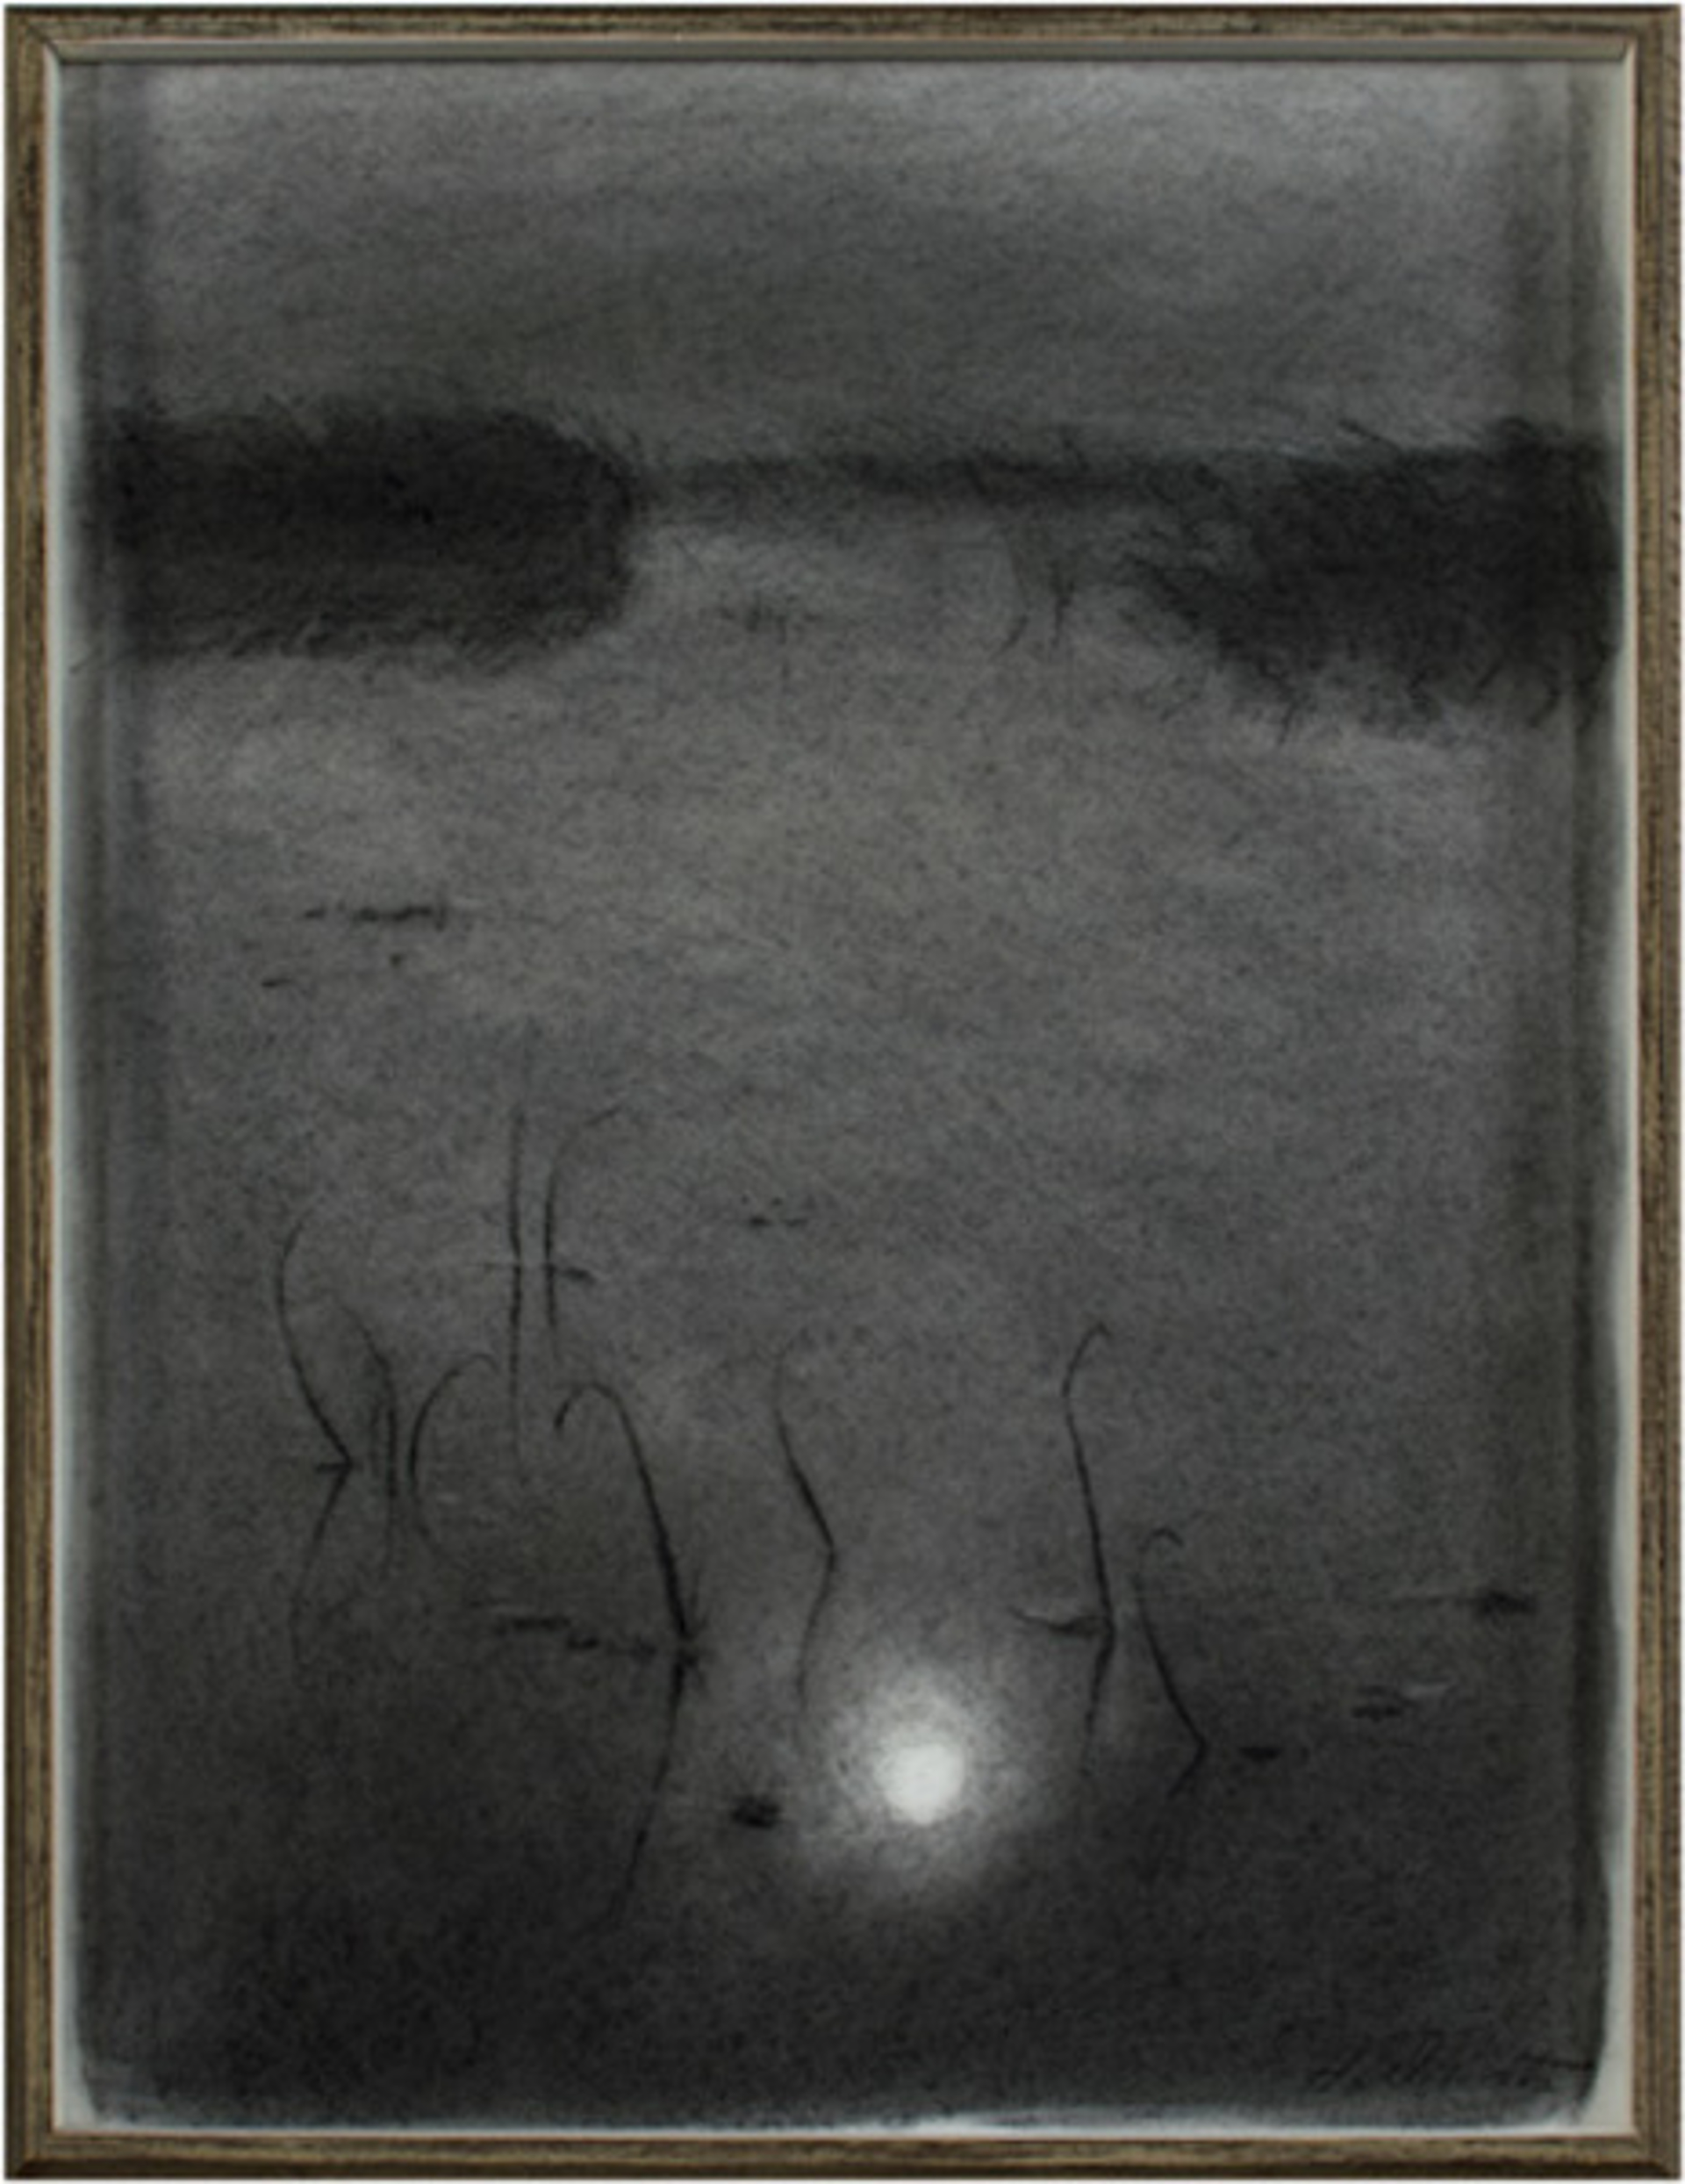 Morning Mist, signed by Howard Schroedter